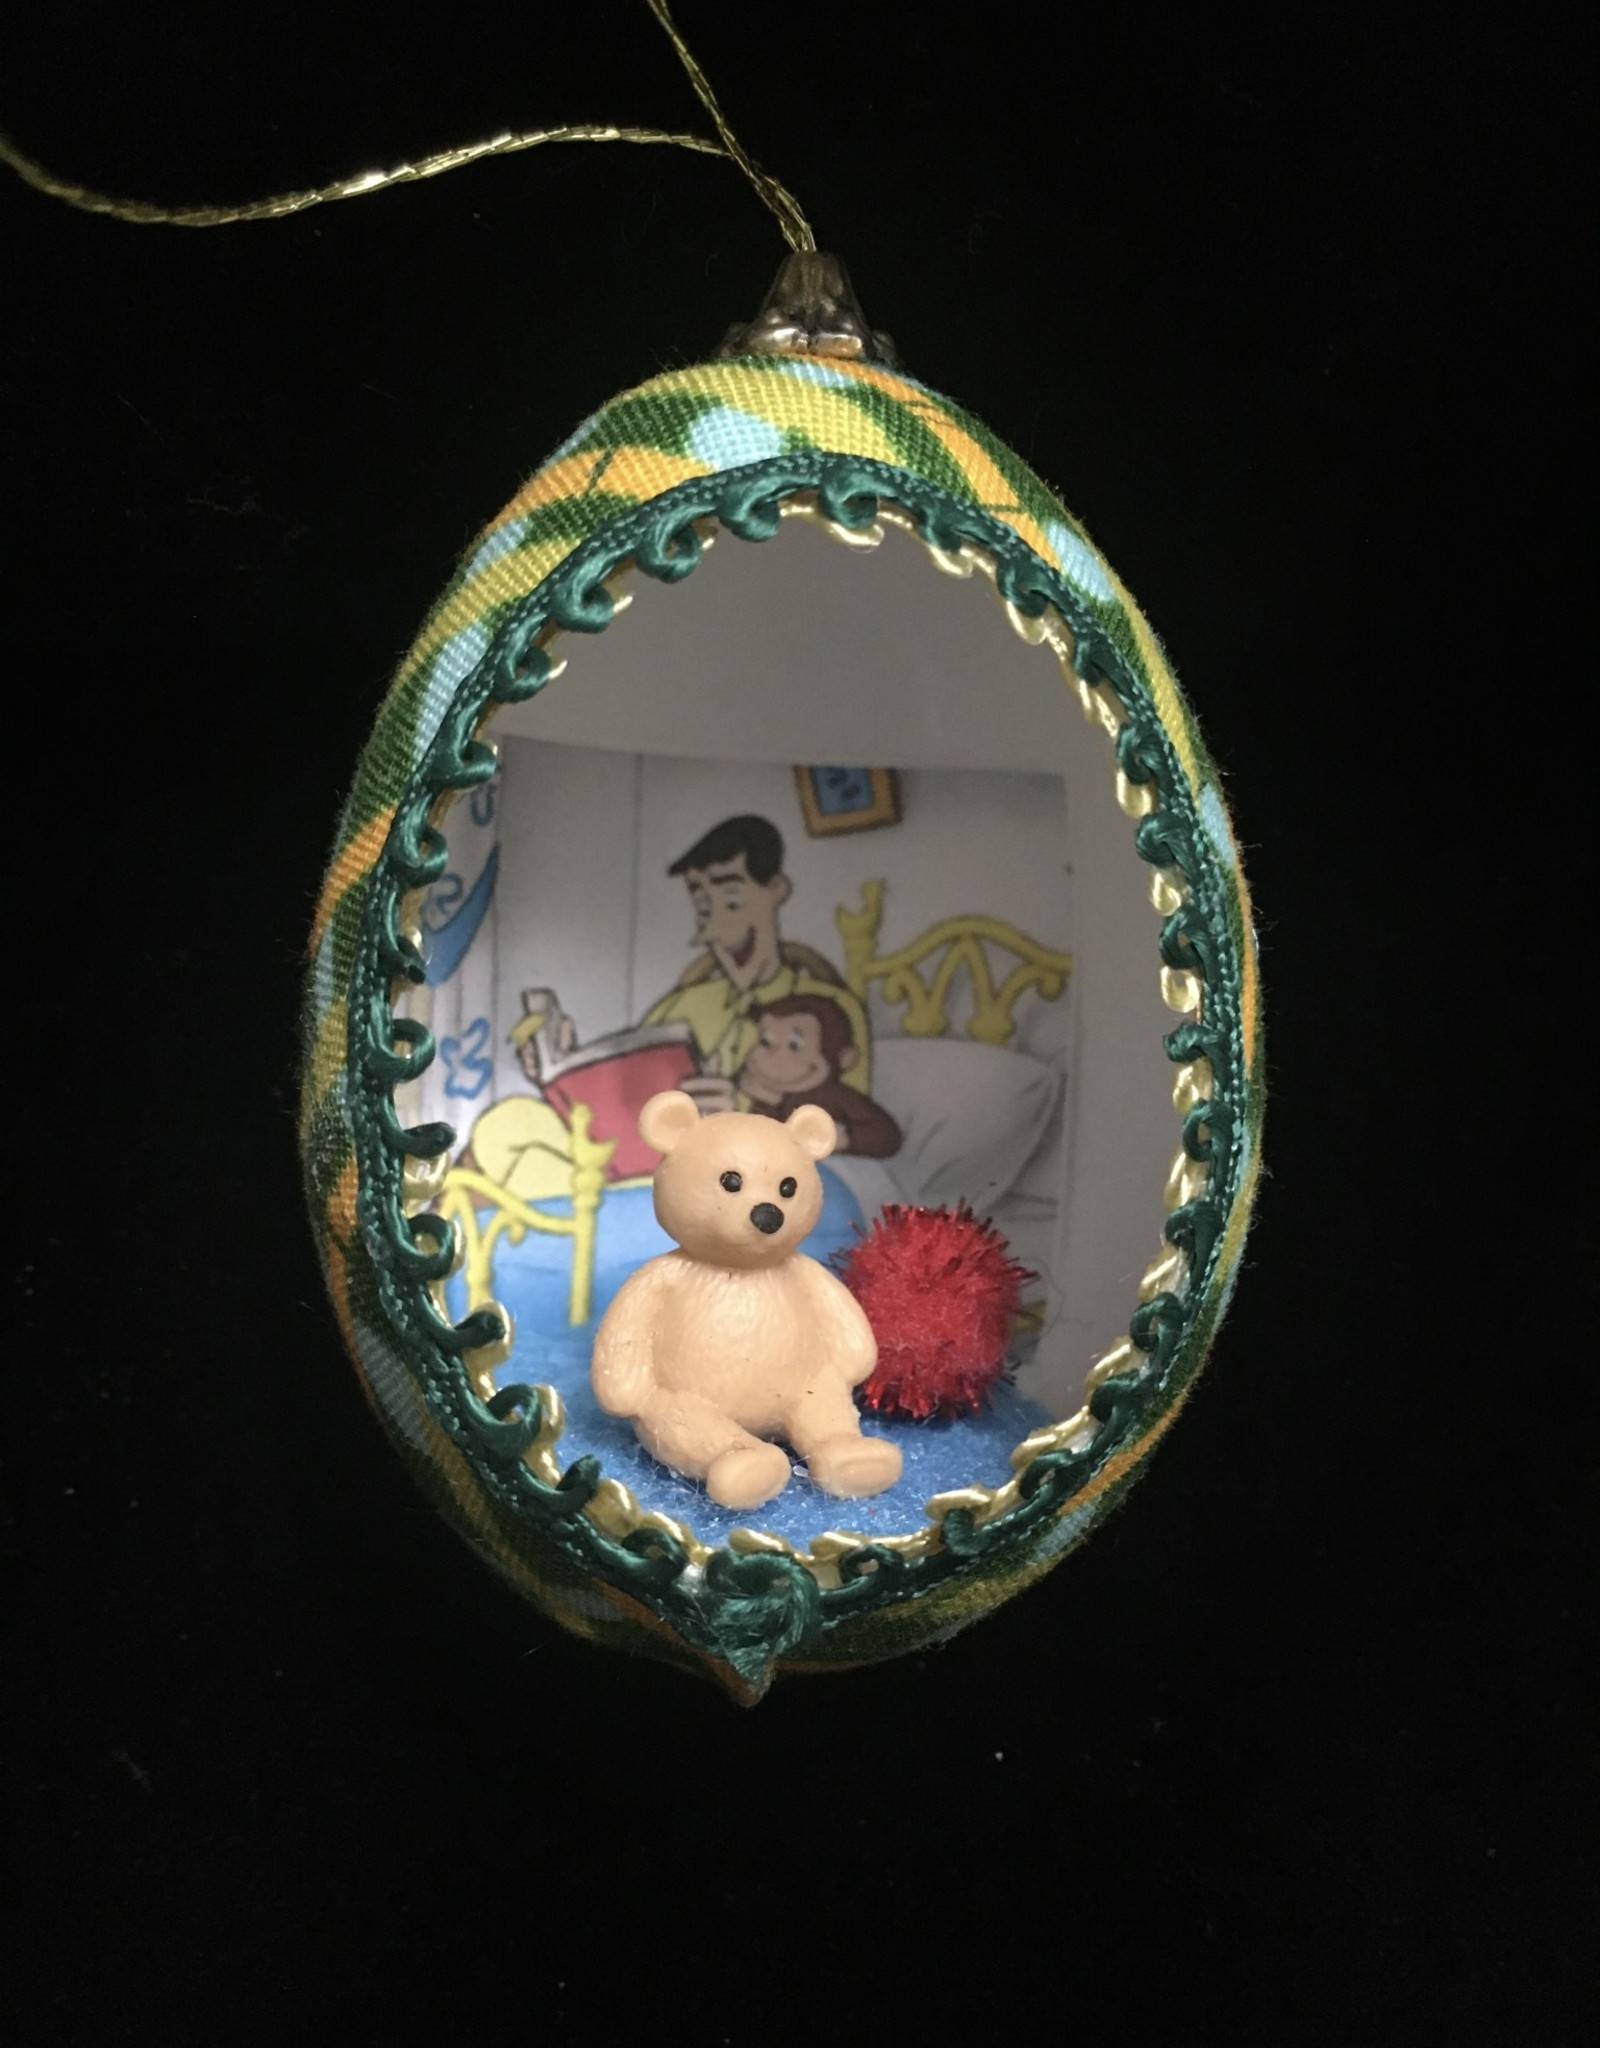 Ammi Brooks Curious George Real Egg Ornament w/ Teddy Bear